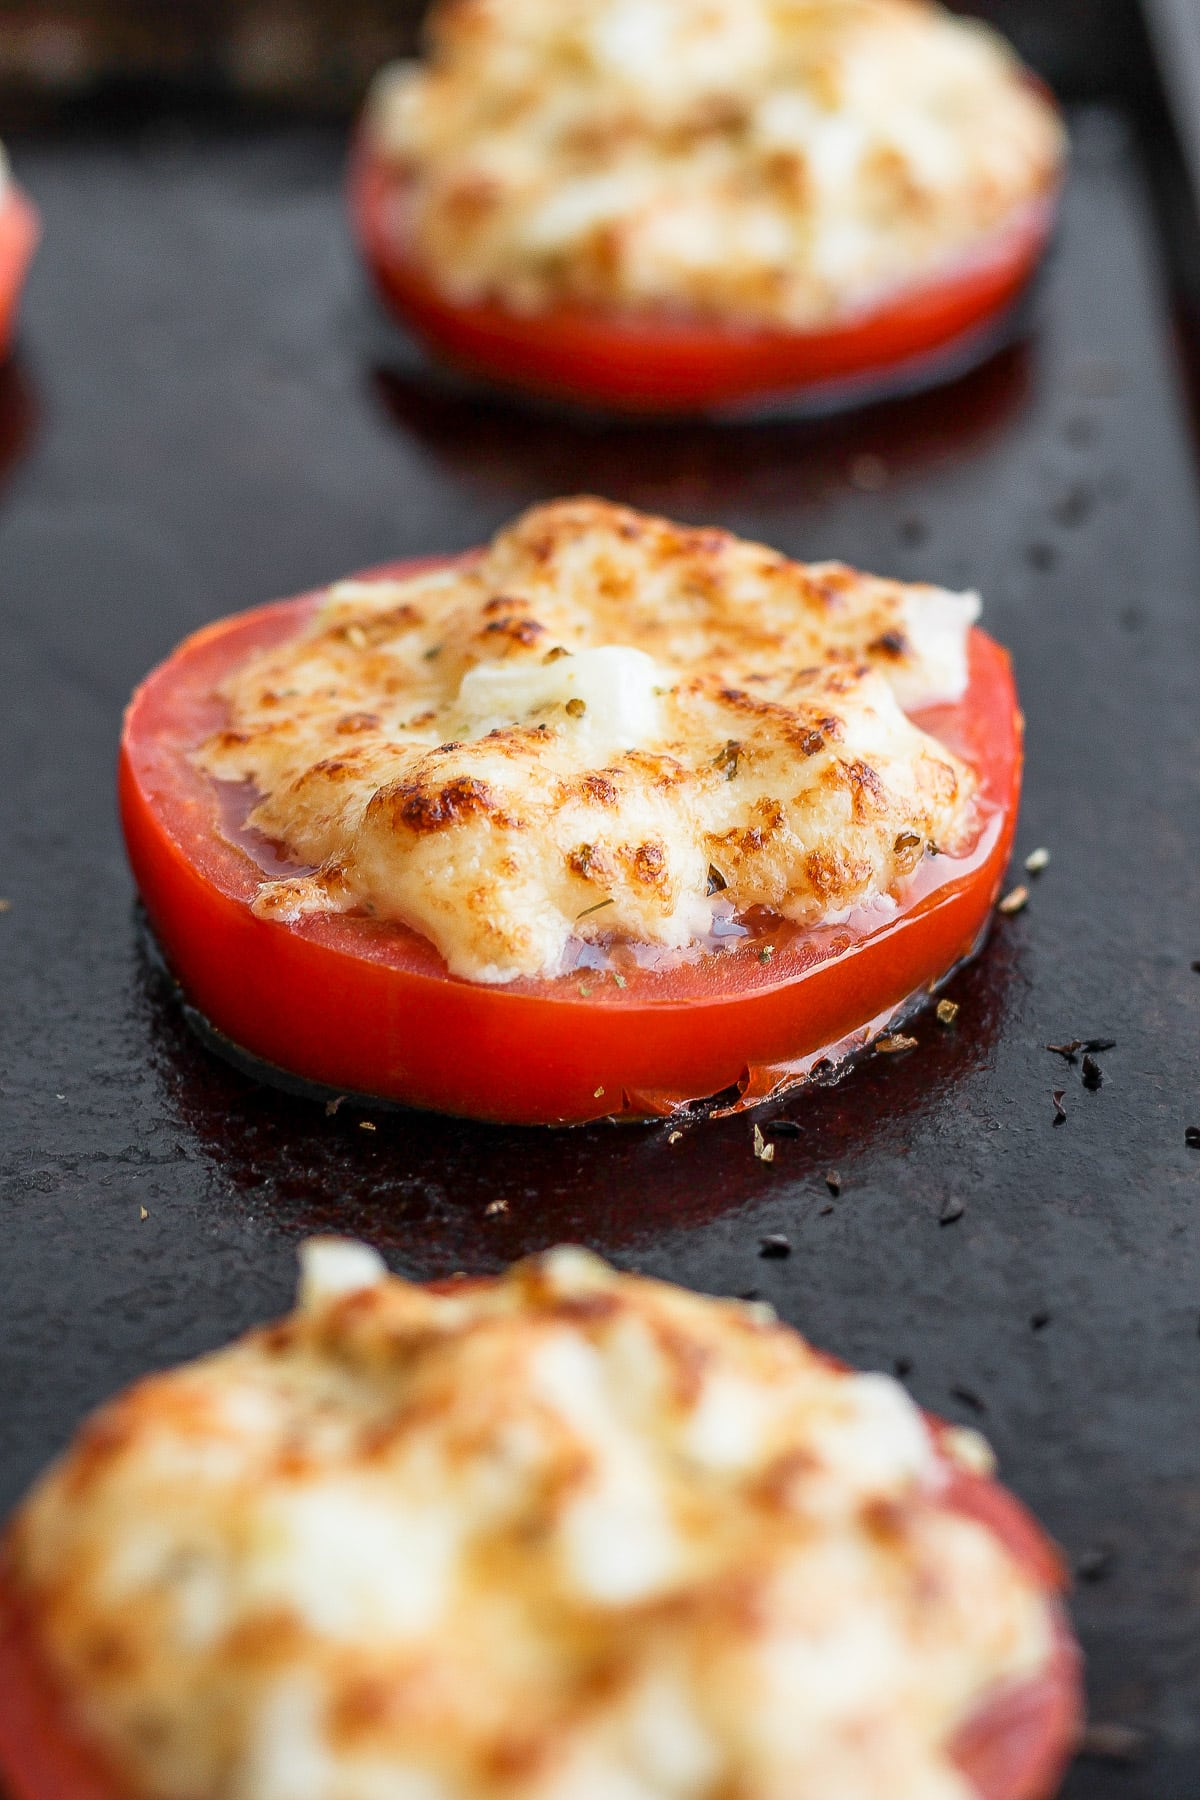 Thick sliced tomatoes with a mayo parmesan mixture on top that is browned from the broiler.